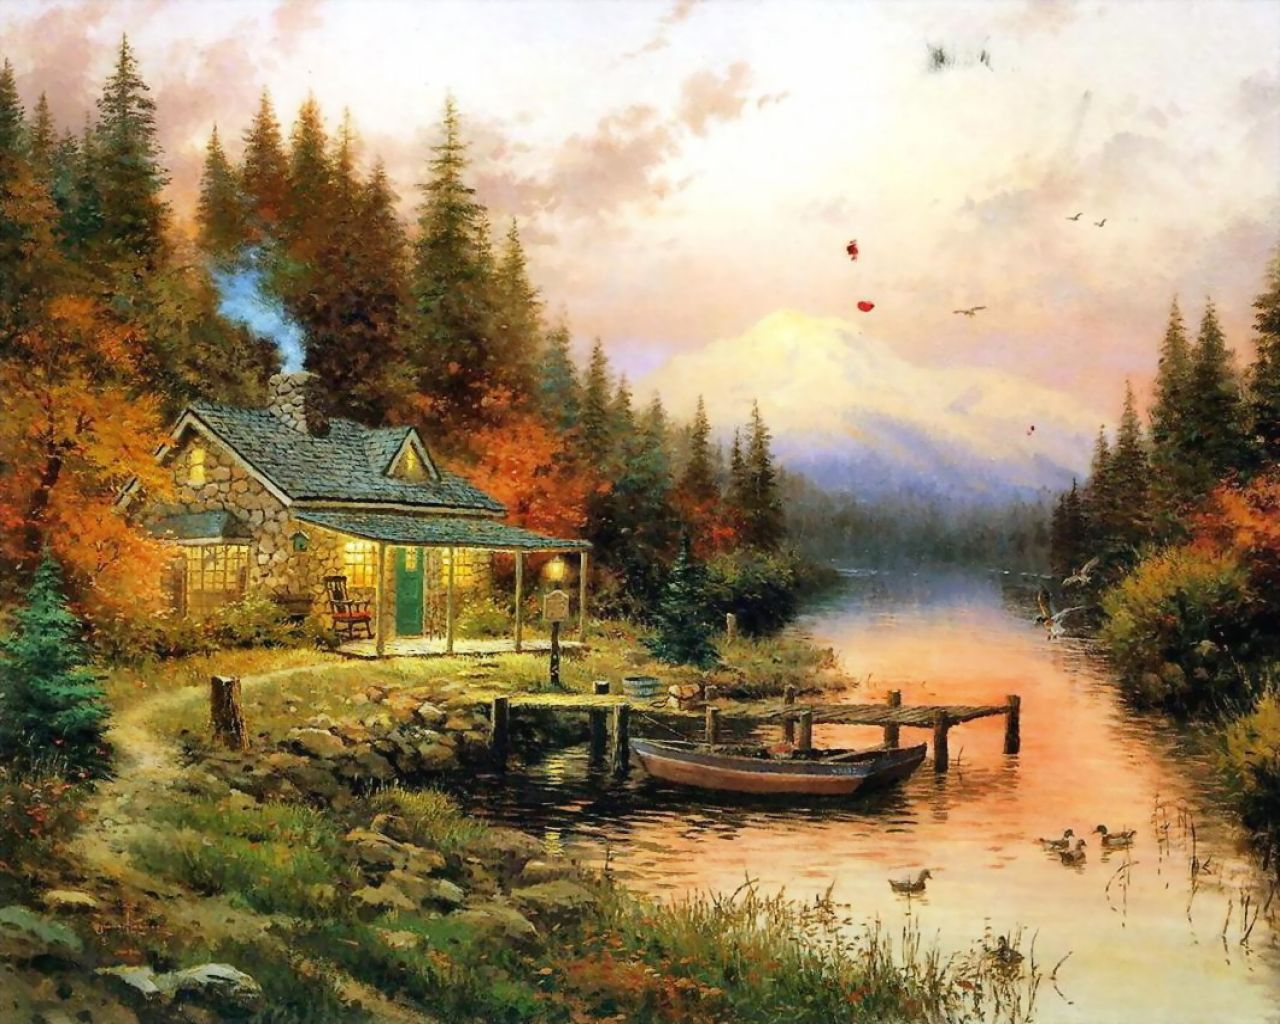 https://onlyartblog.files.wordpress.com/2012/04/thomas-kinkade.jpg